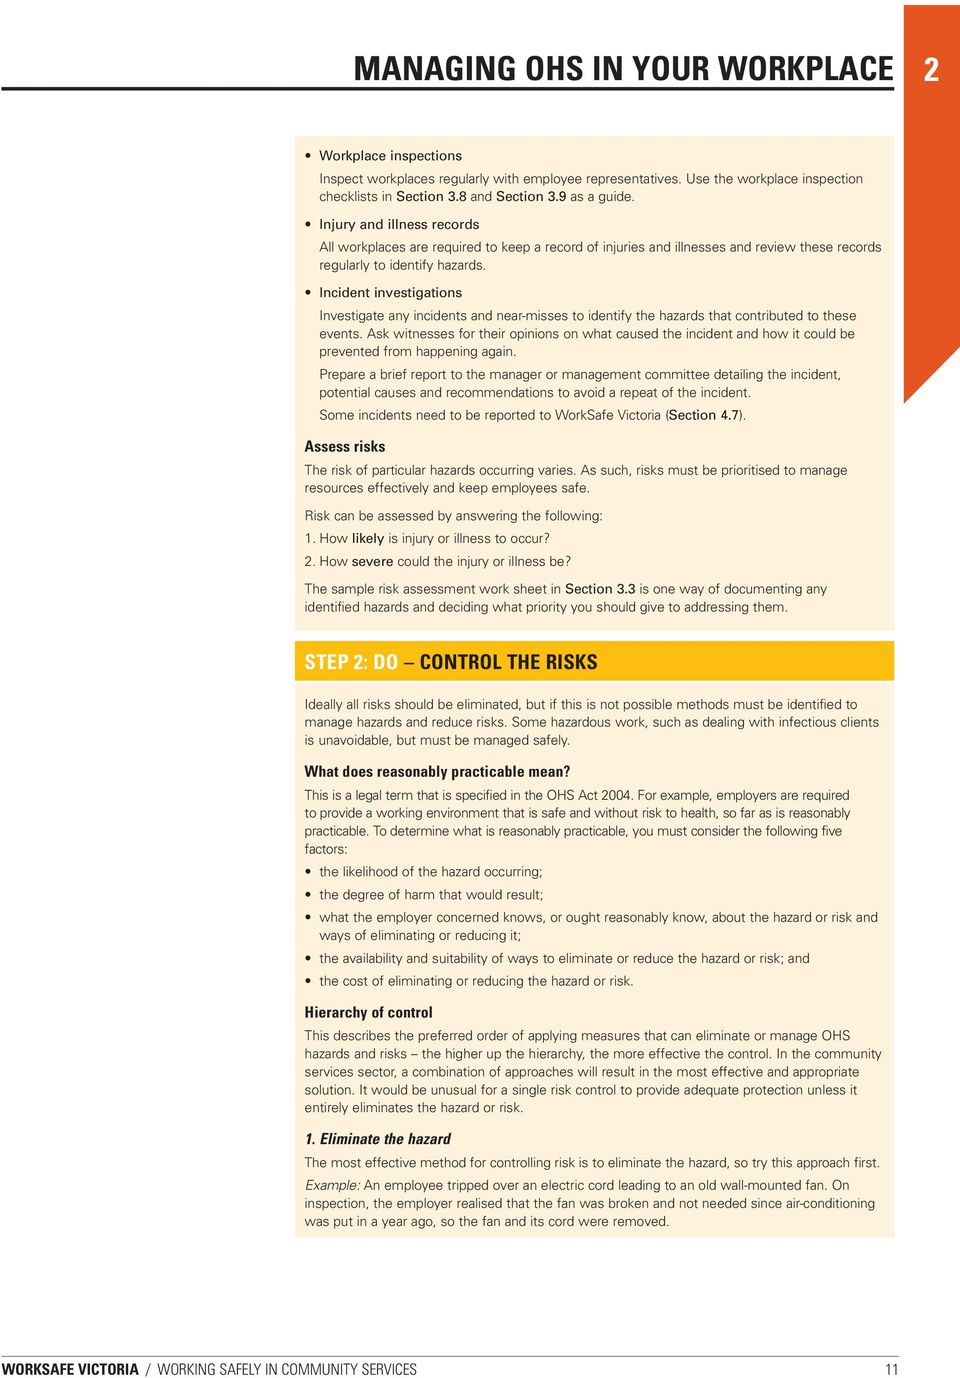 Working safely in community services pdf incident investigations investigate any incidents and near misses to identify the hazards that contributed to fandeluxe Choice Image